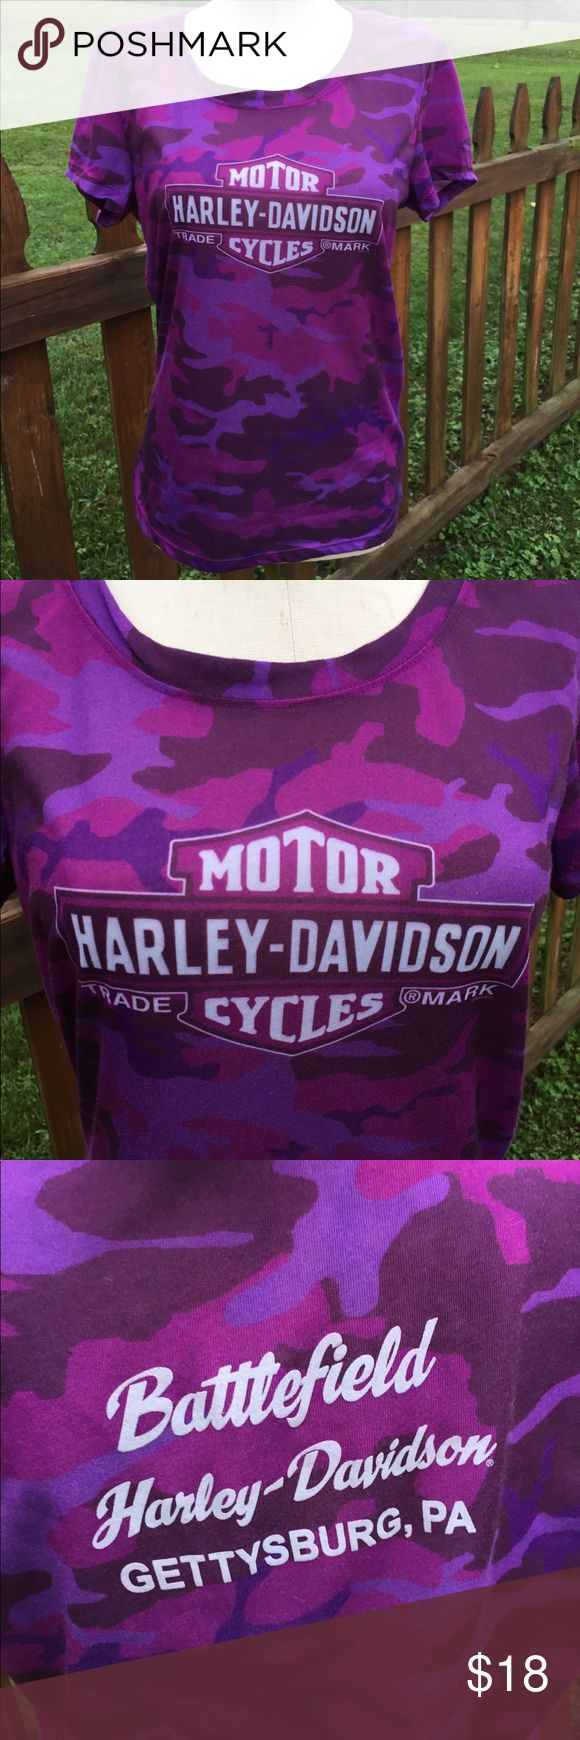 Harley Davidson Camo Style Shirt Size Medium Size medium. Super gently preowned. Be sure to view the other items in our closet. We offer  women's, Mens and kids items in a variety of sizes. Bundle and save!! We love reasonable offers!! Thank you for viewing our item!! Harley-Davidson Tops